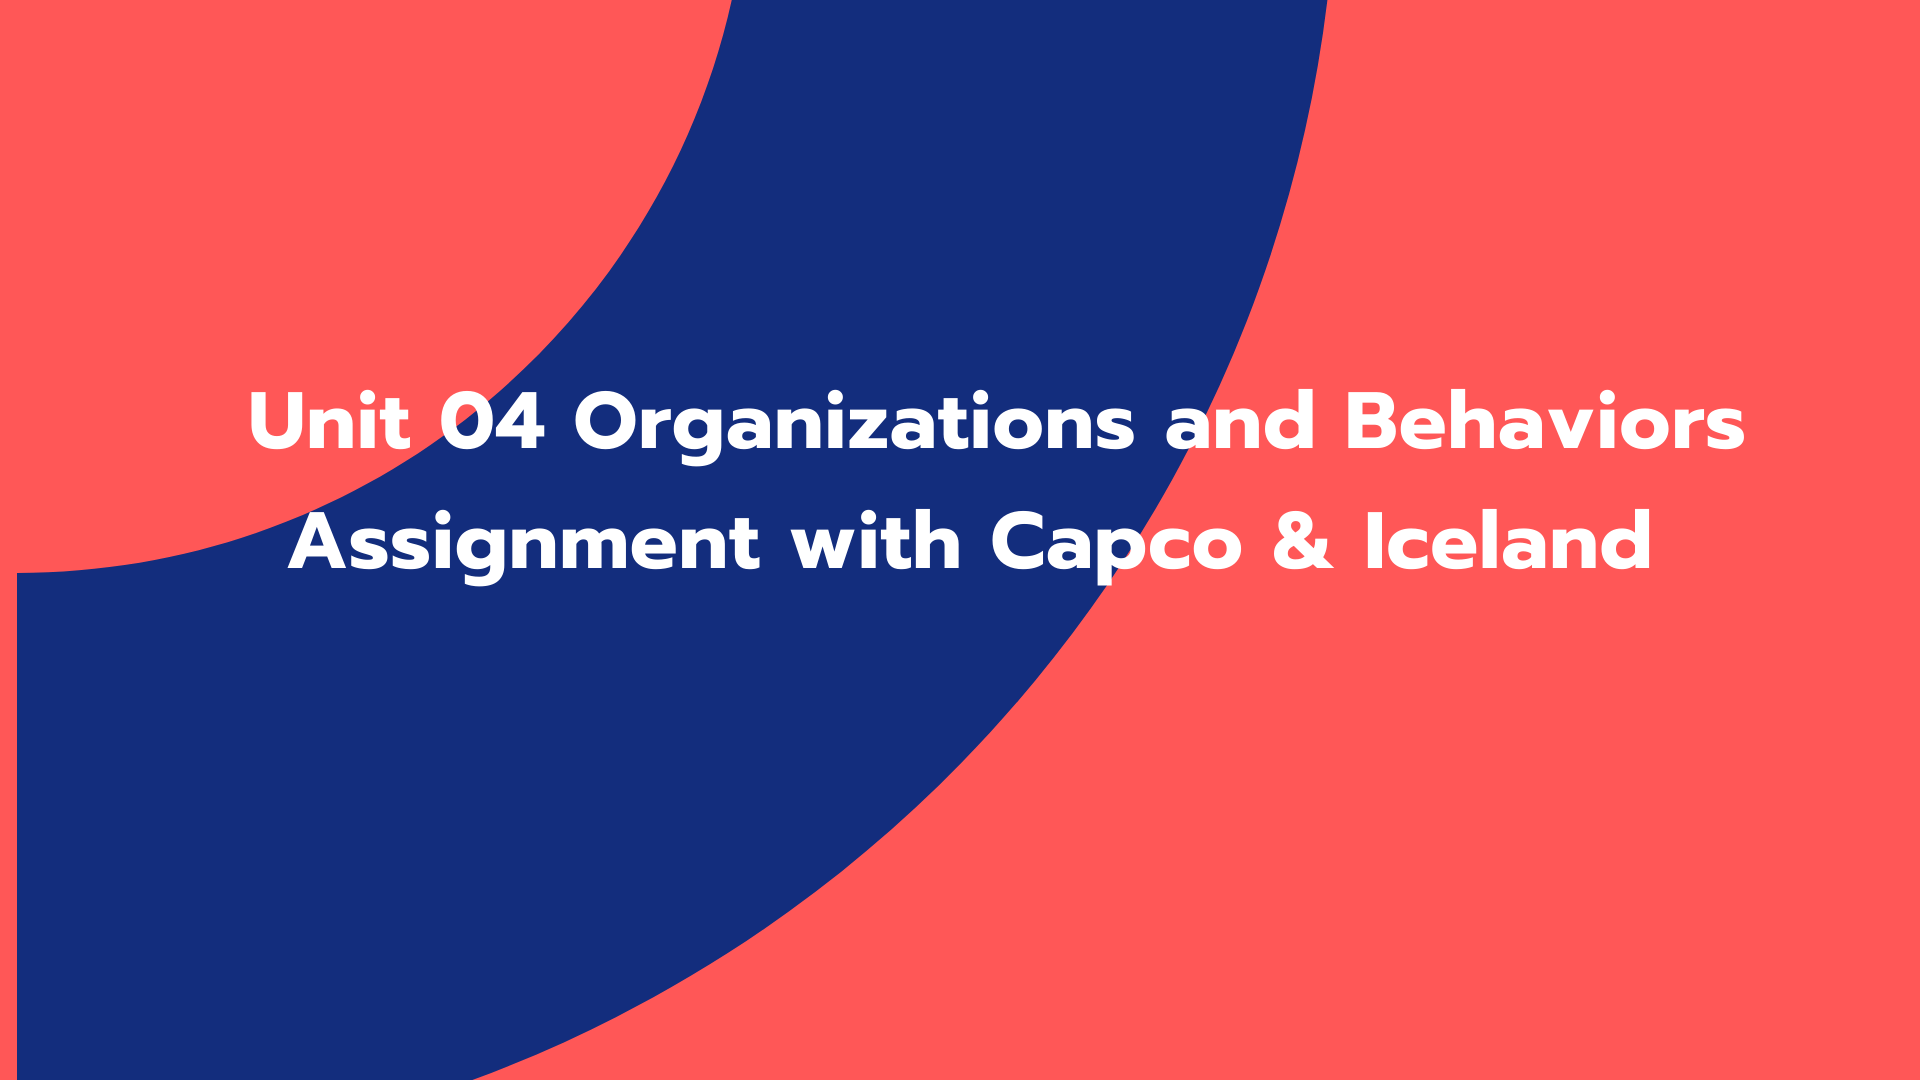 Unit 04 Organizations and Behaviors Assignment with Capco & Iceland